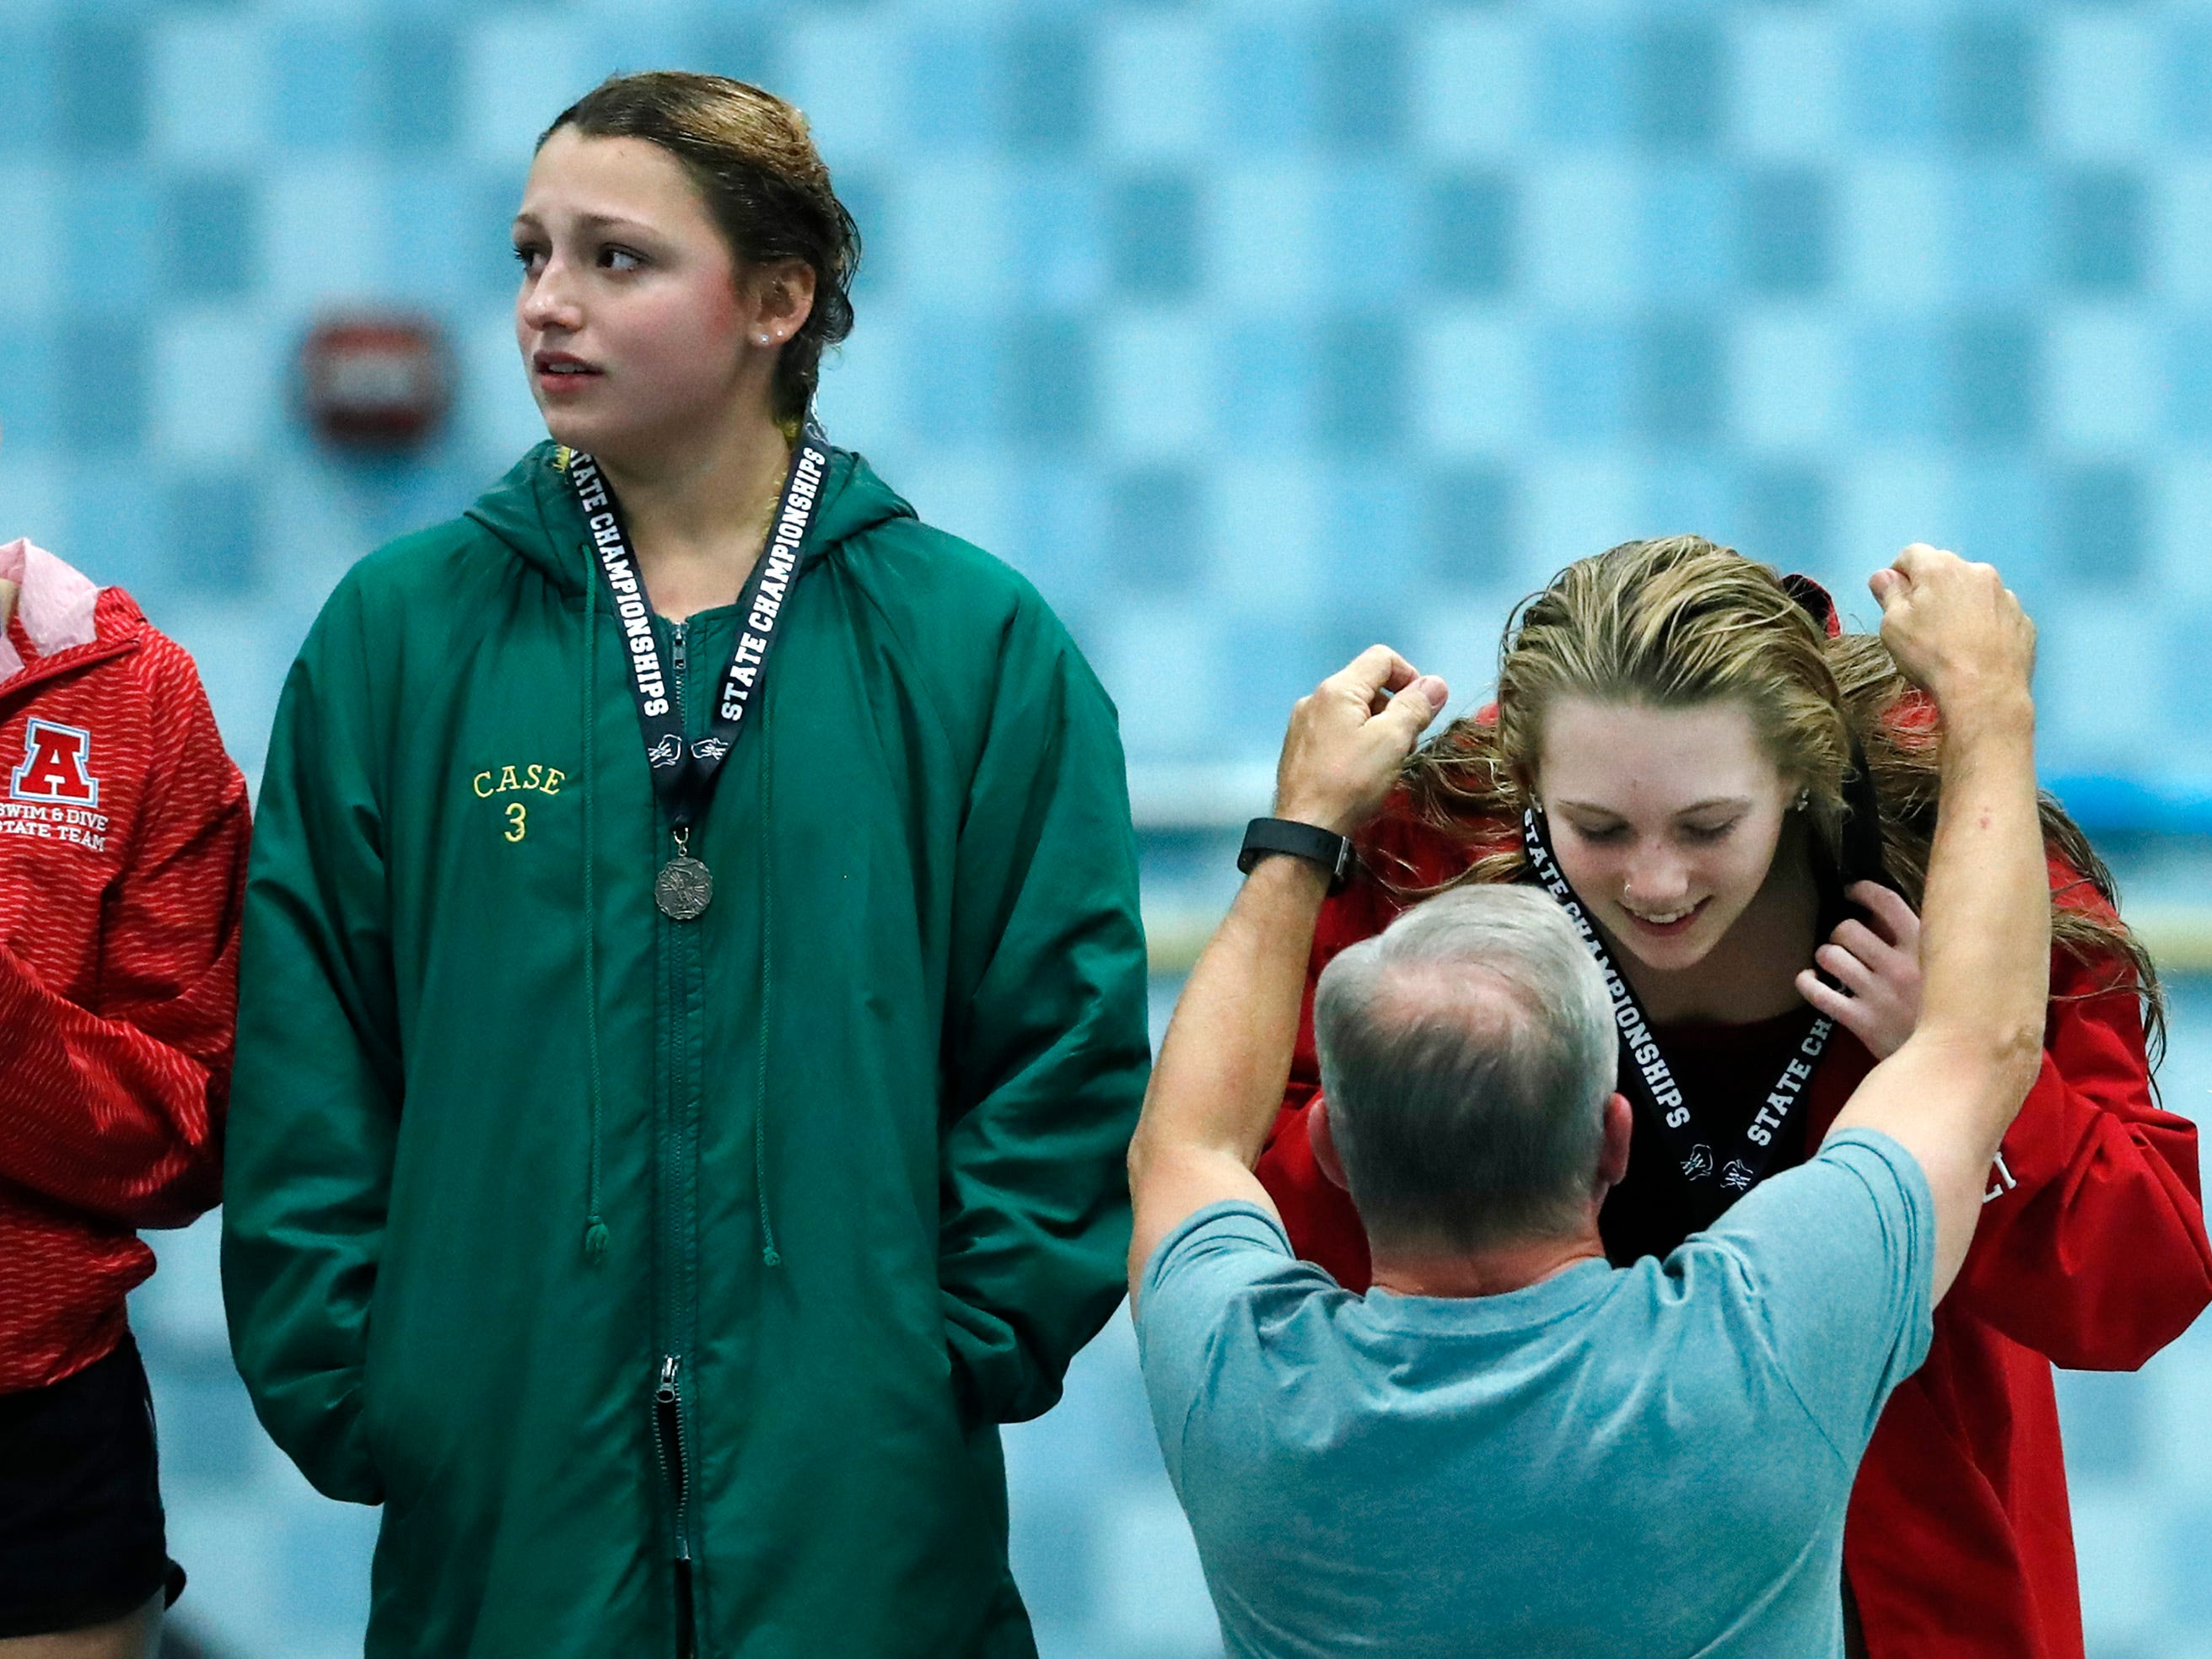 Neenah's Av Osero gets her first place medal after finishing diving during the WIAA Division 1 State Swimming and Diving meet Saturday, Nov. 10, 2018, at the UW Natatorium in Madison, Wis.